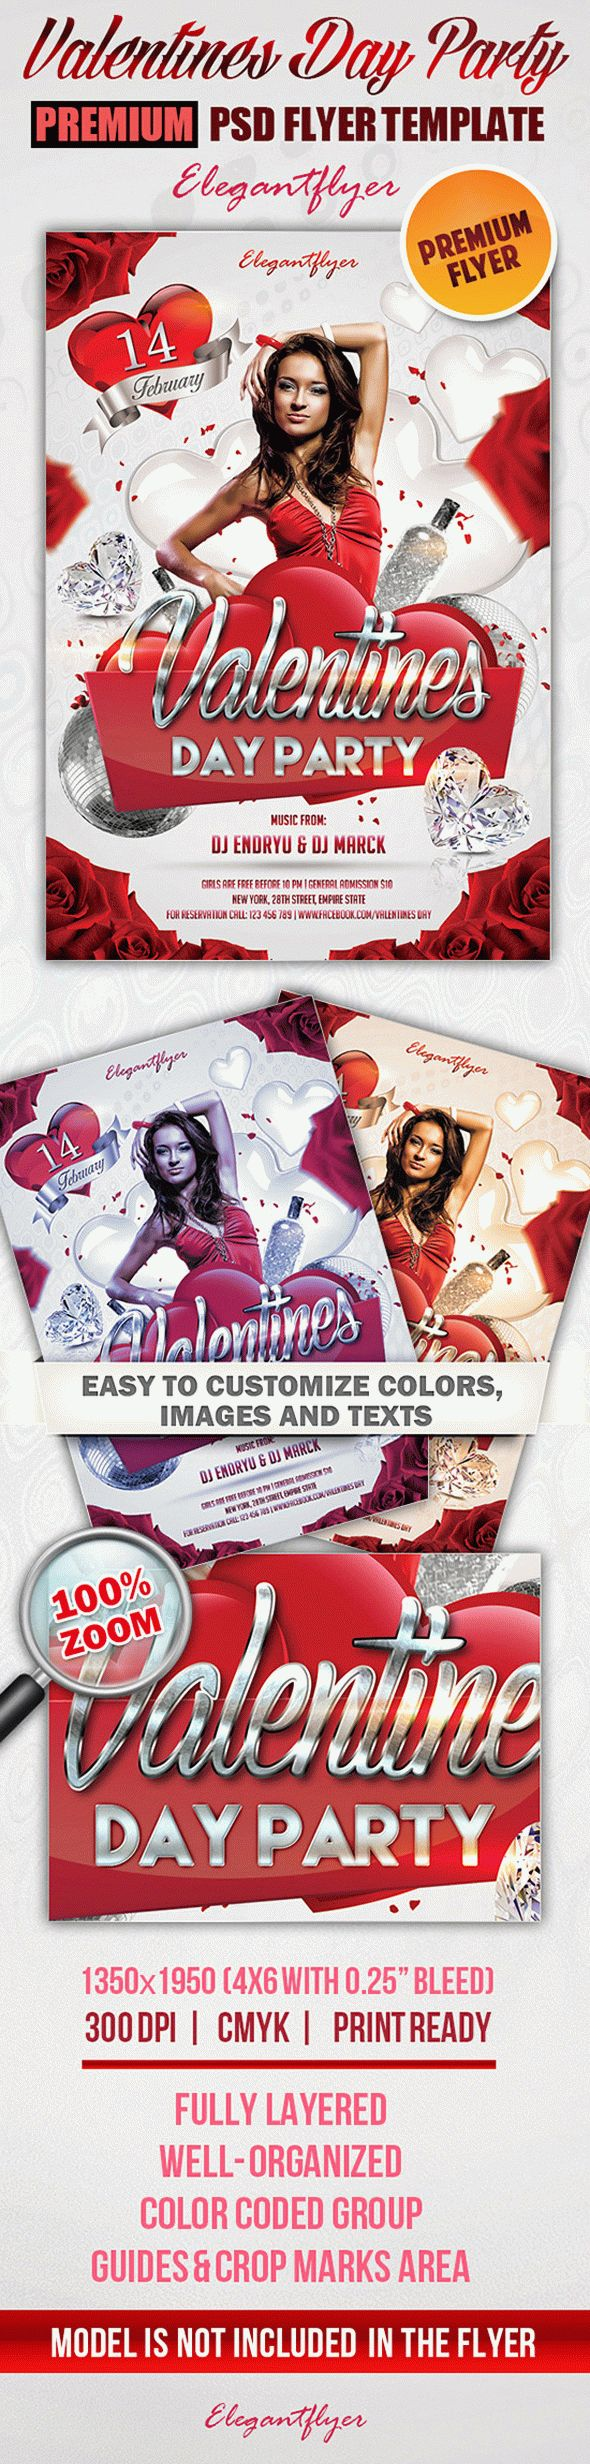 Valentines Day Party – Premium Club flyer PSD Template